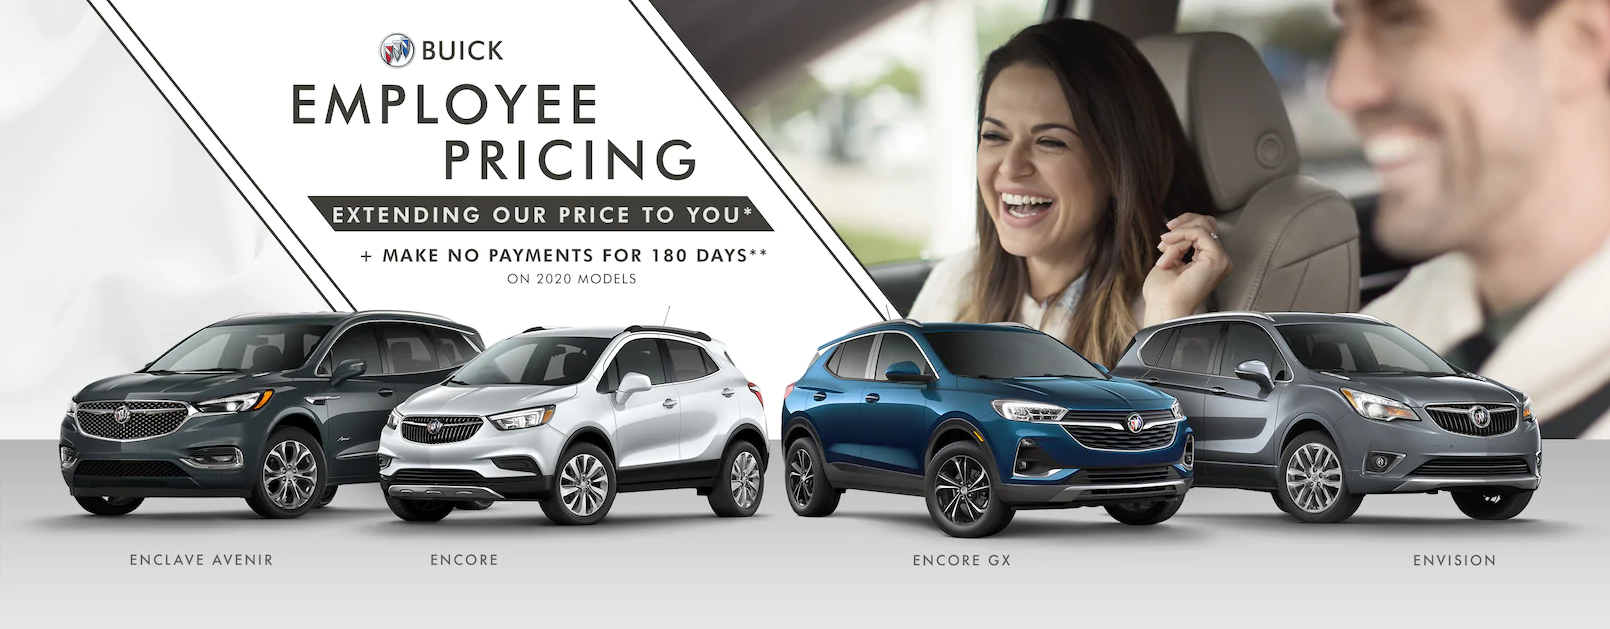 Employee Pricing Buick